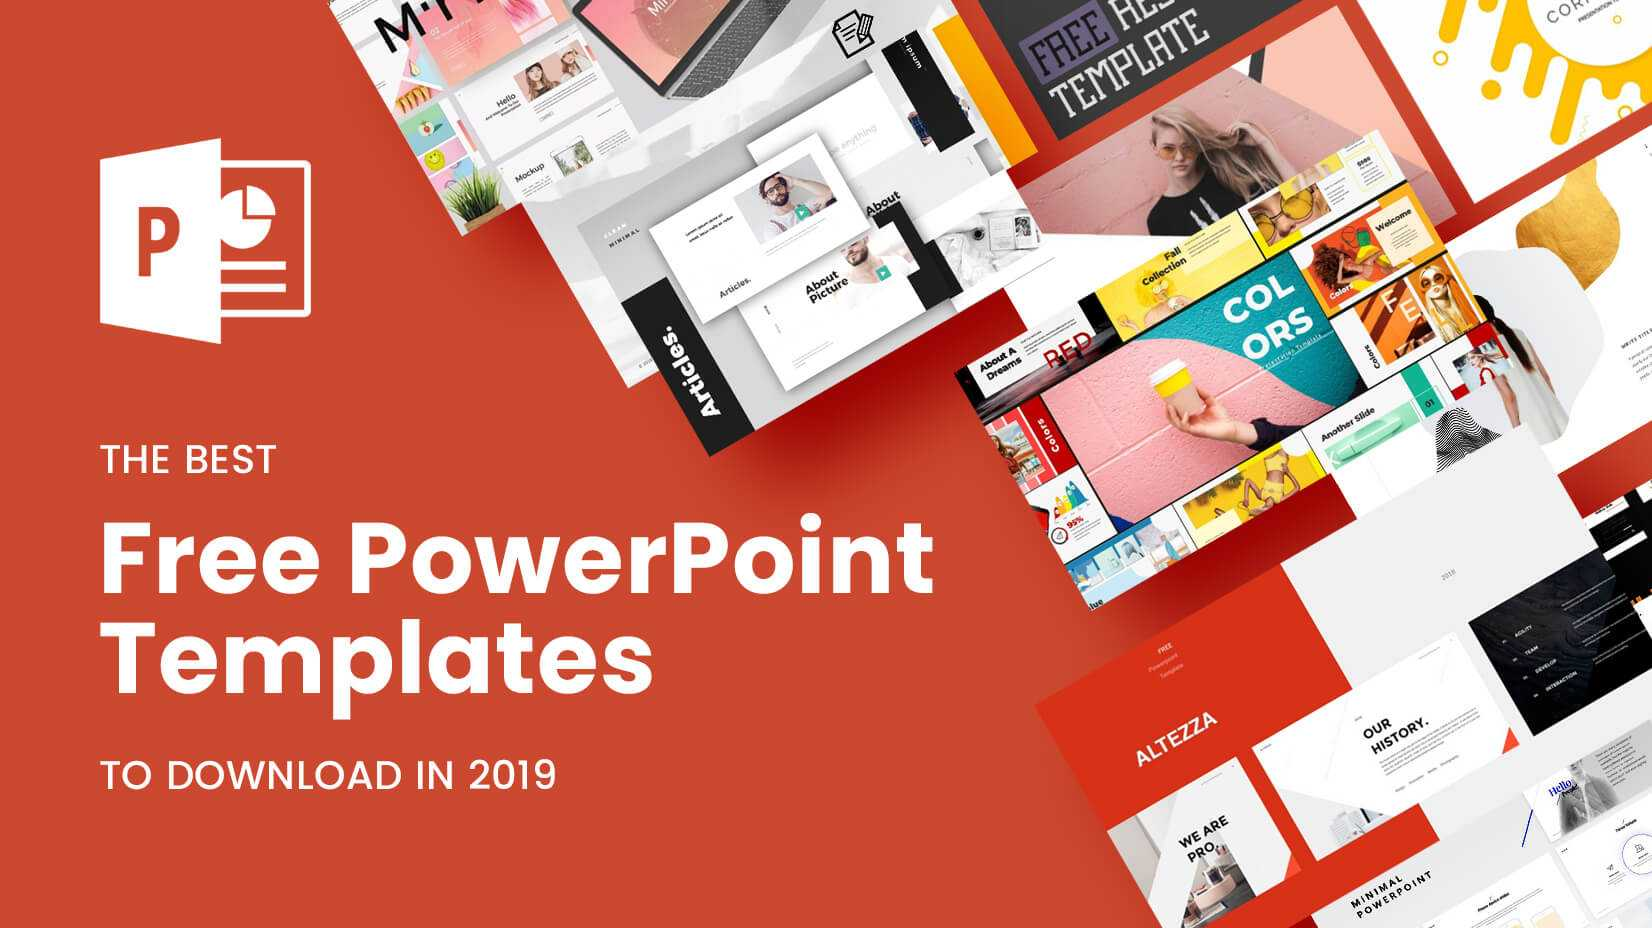 The Best Free Powerpoint Templates To Download In 2019 With Regard To Powerpoint Slides Design Templates For Free